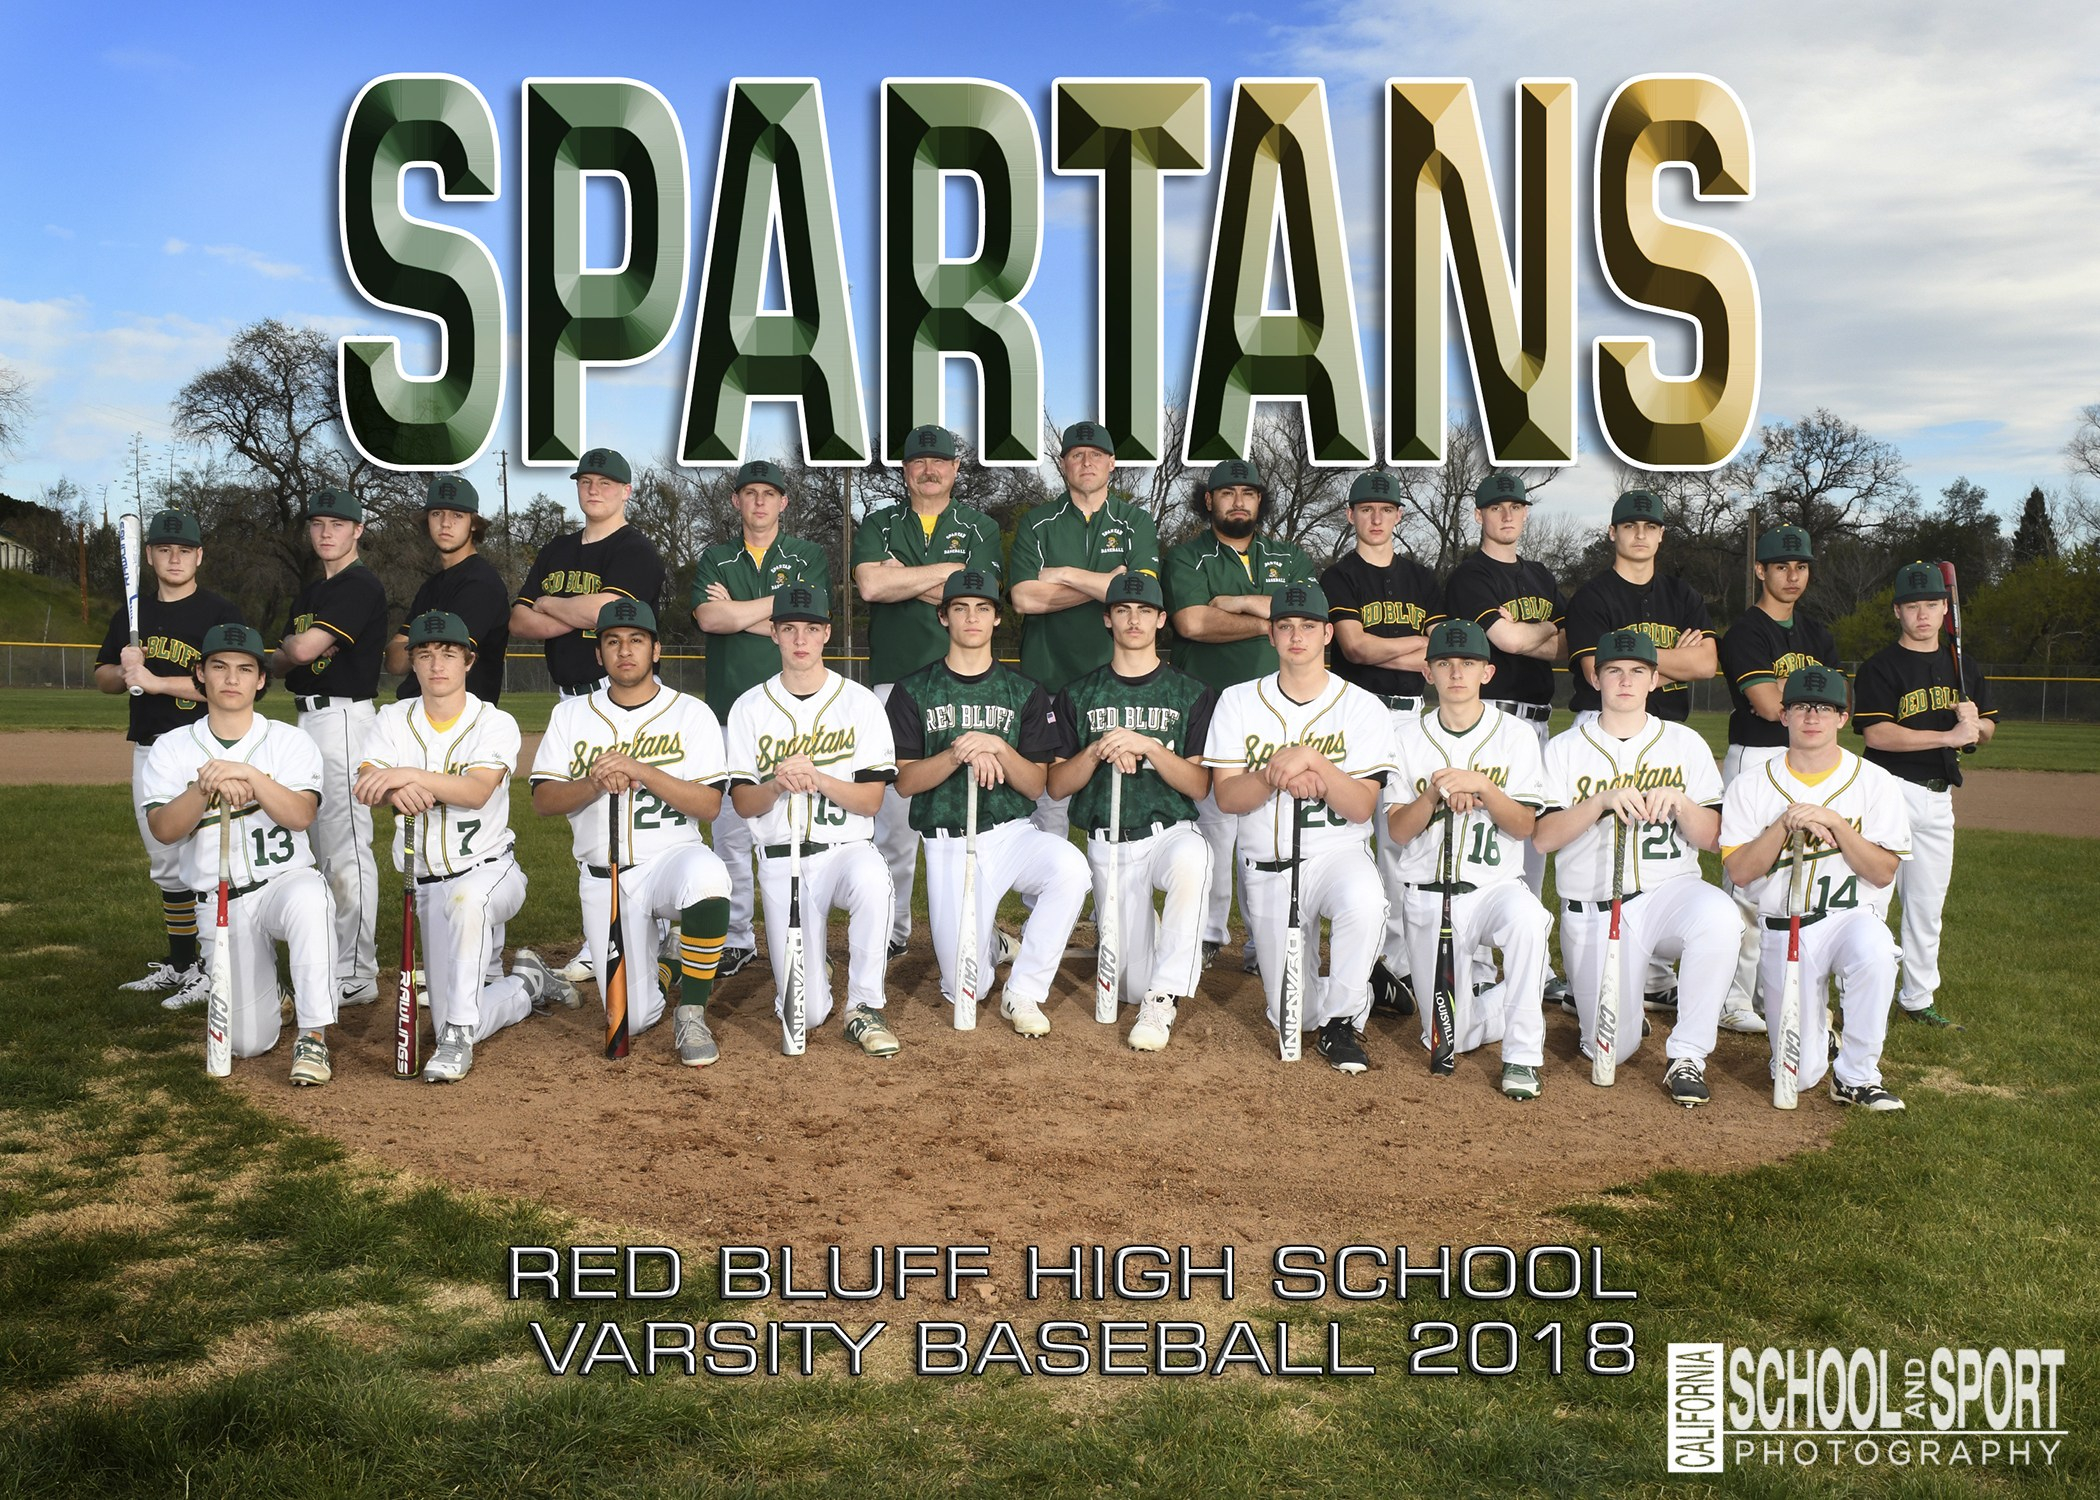 Red Bluff High School - Baseball Regarding Red Bluff High School Schedule